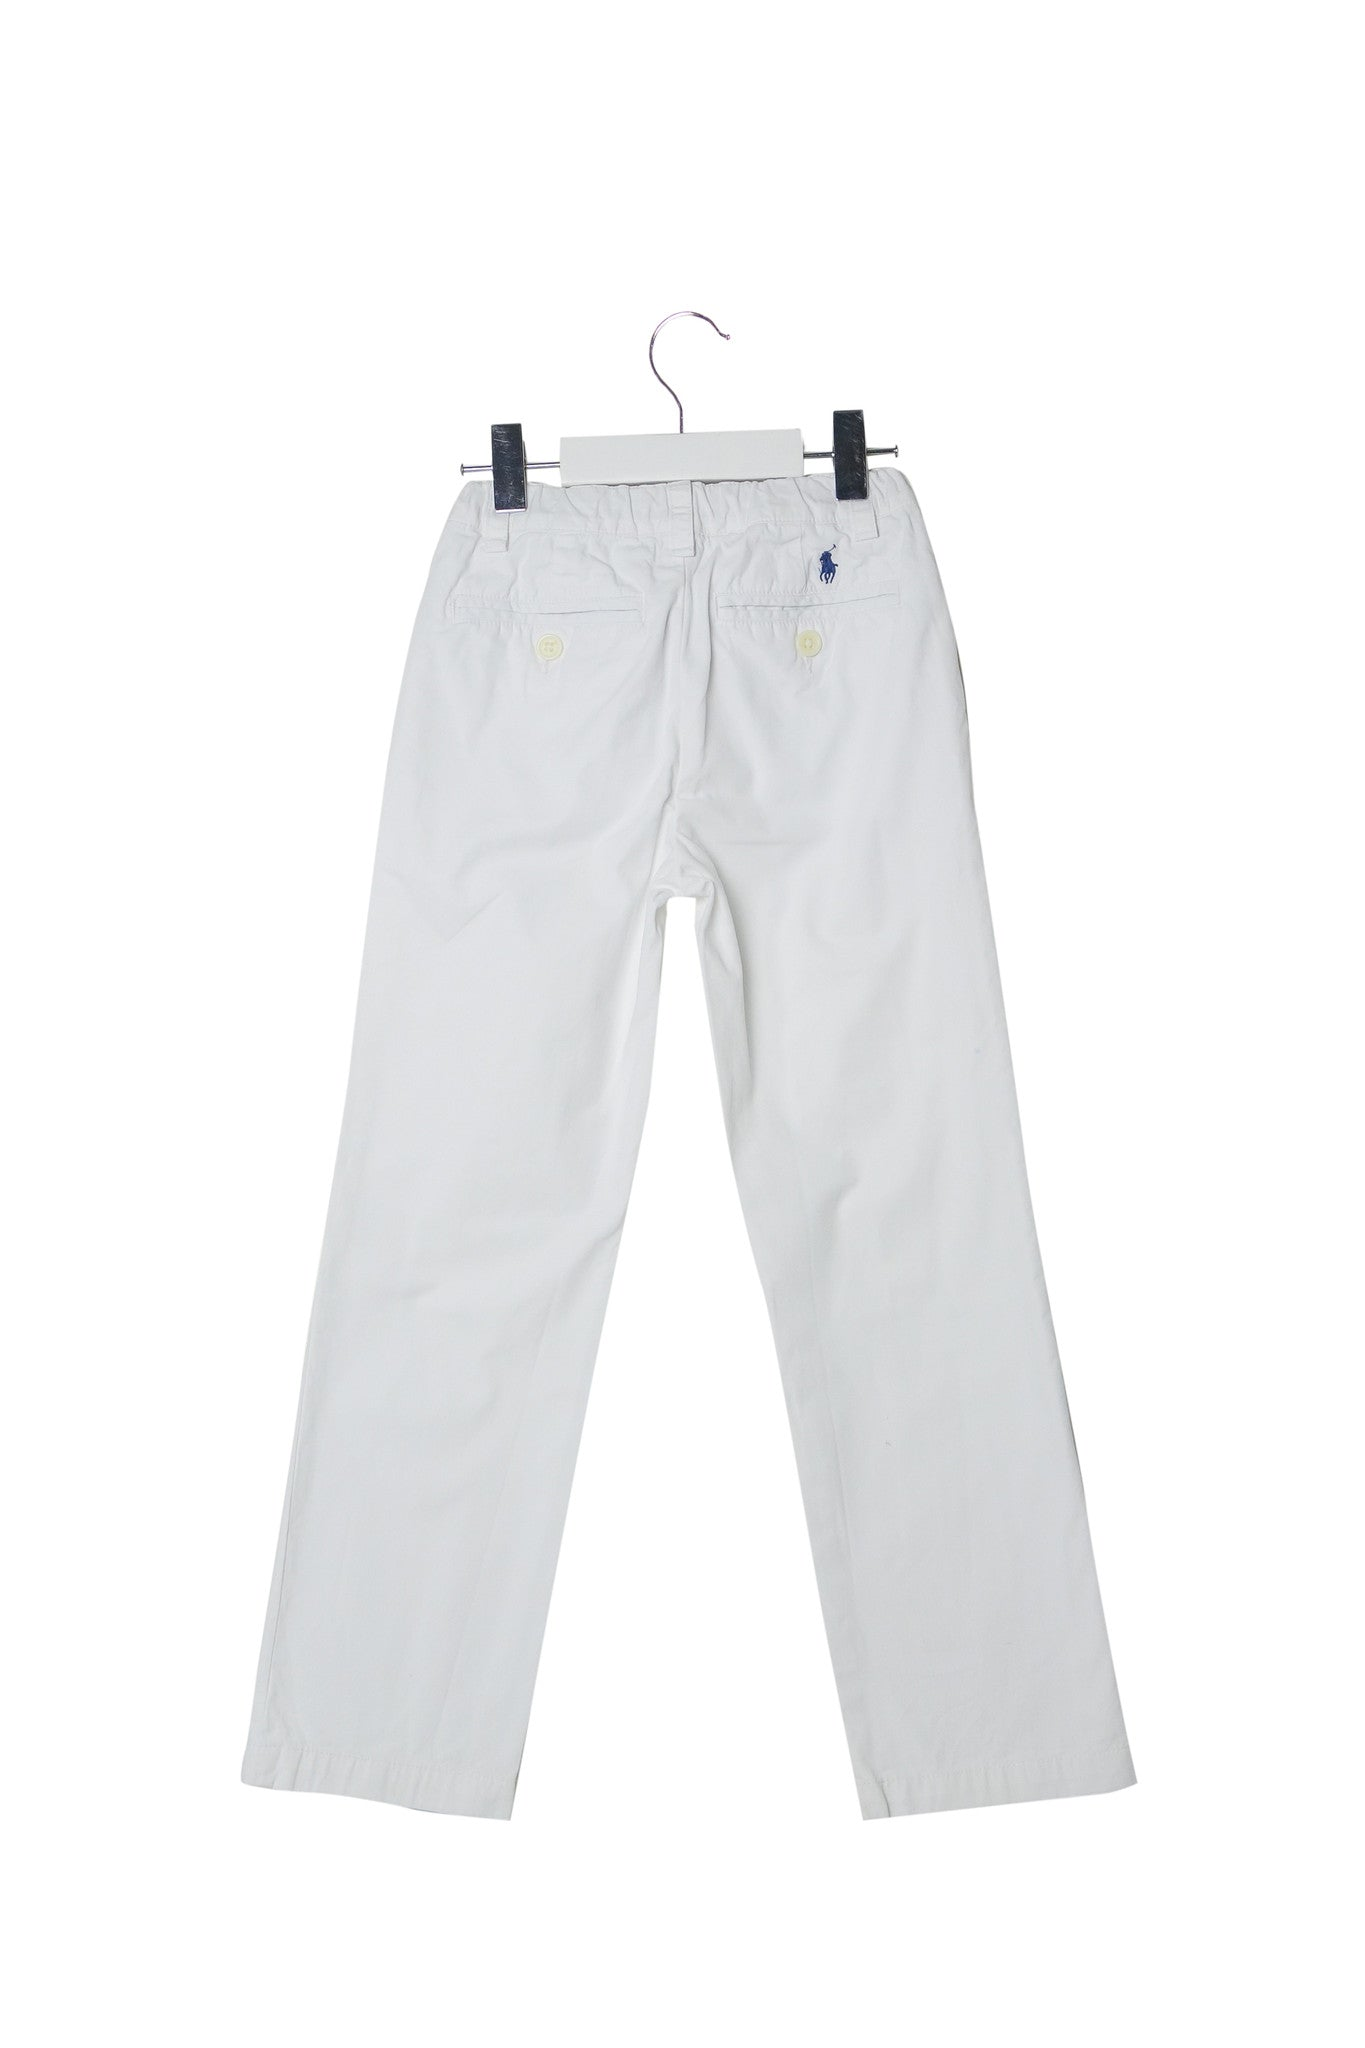 10002737 Polo Ralph Lauren Kids~Pants 6T at Retykle